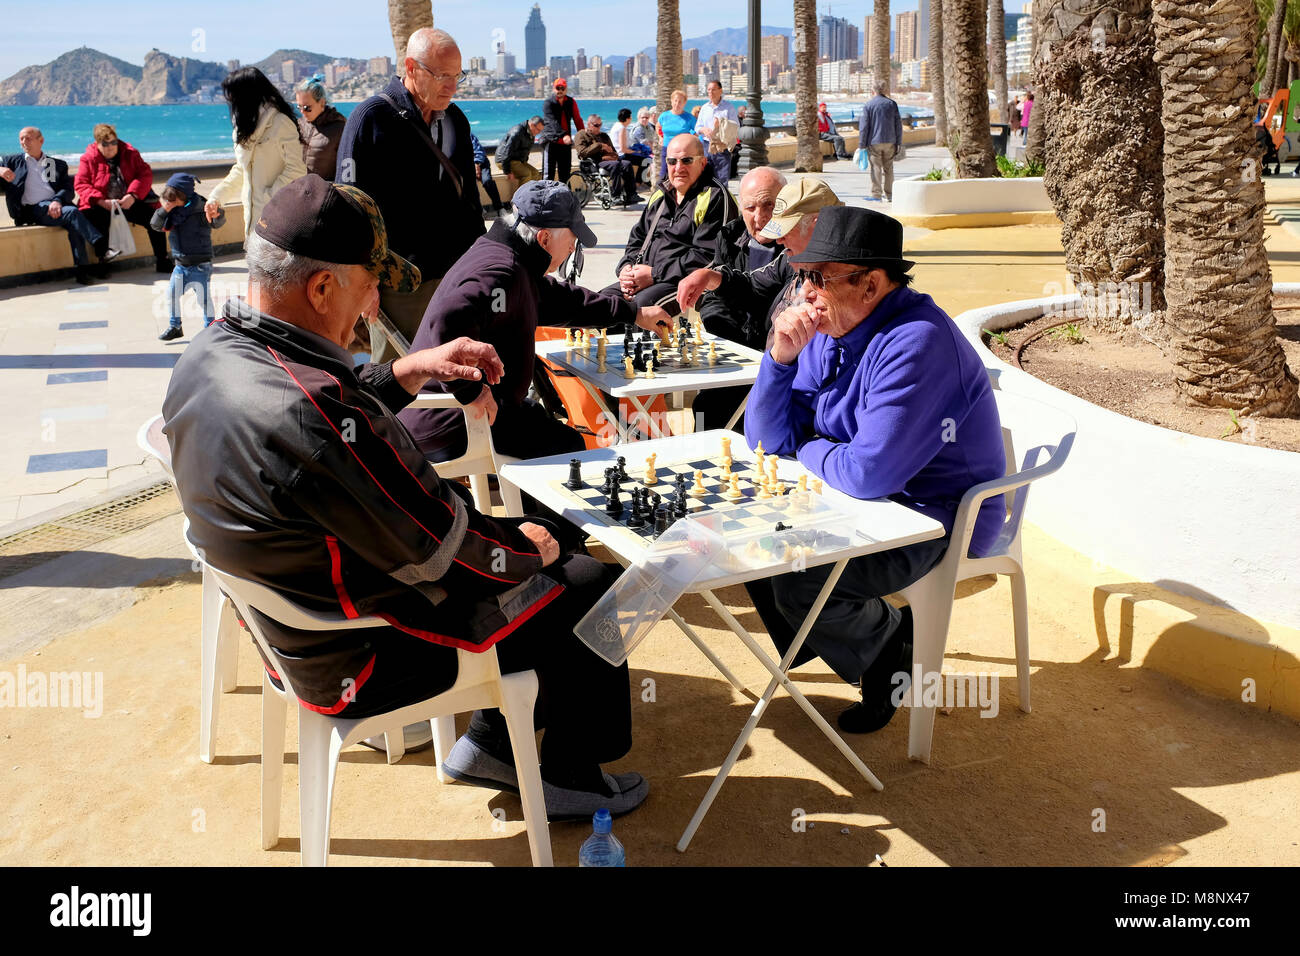 Benidorm, Spain.  March 07, 2018.  Holidaymakers walk the promenade as the Spanish locals play Chess under the palms - Stock Image